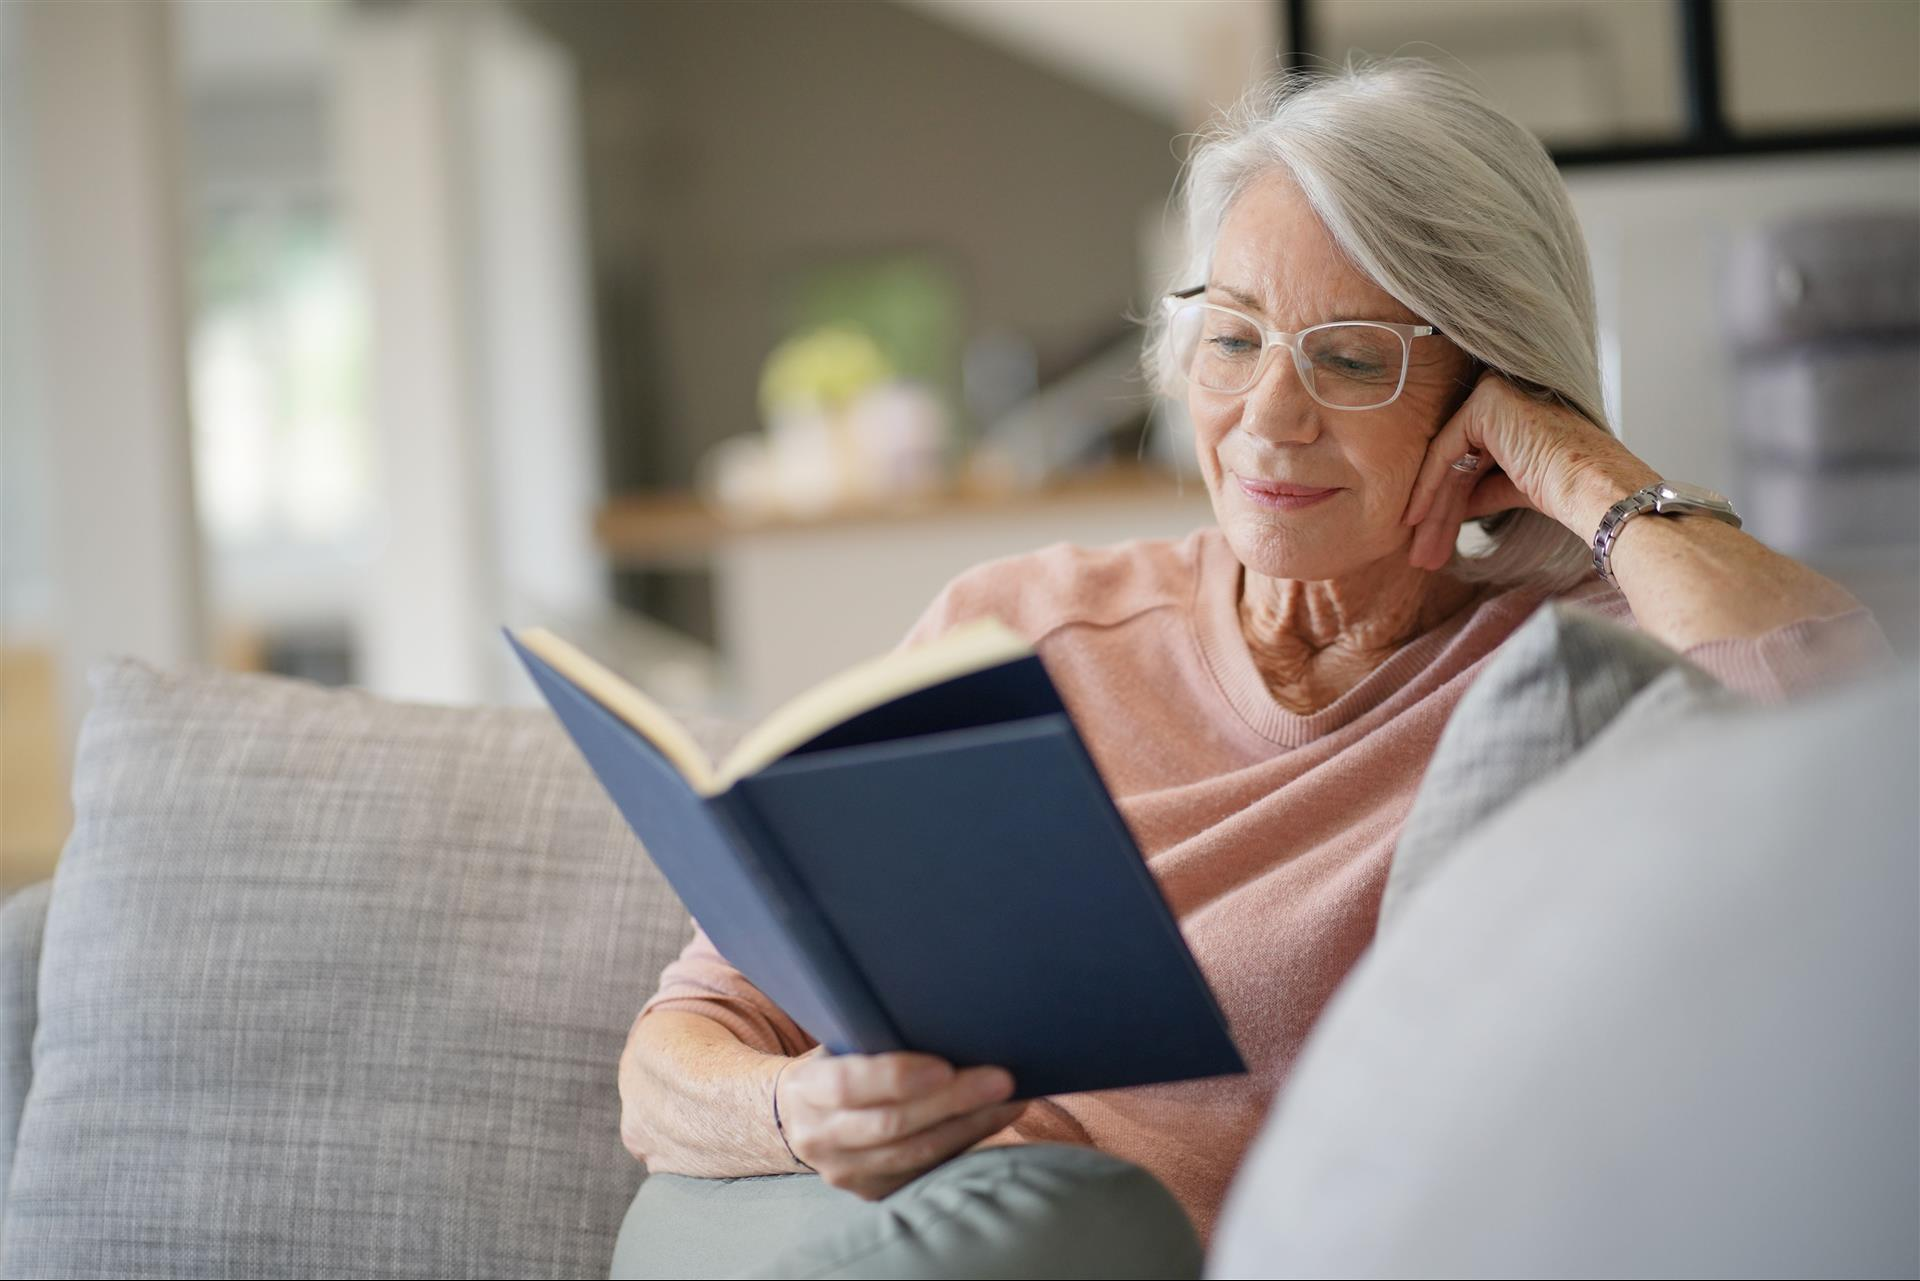 5 Reasons to Read in Your Assisted Living Apartment